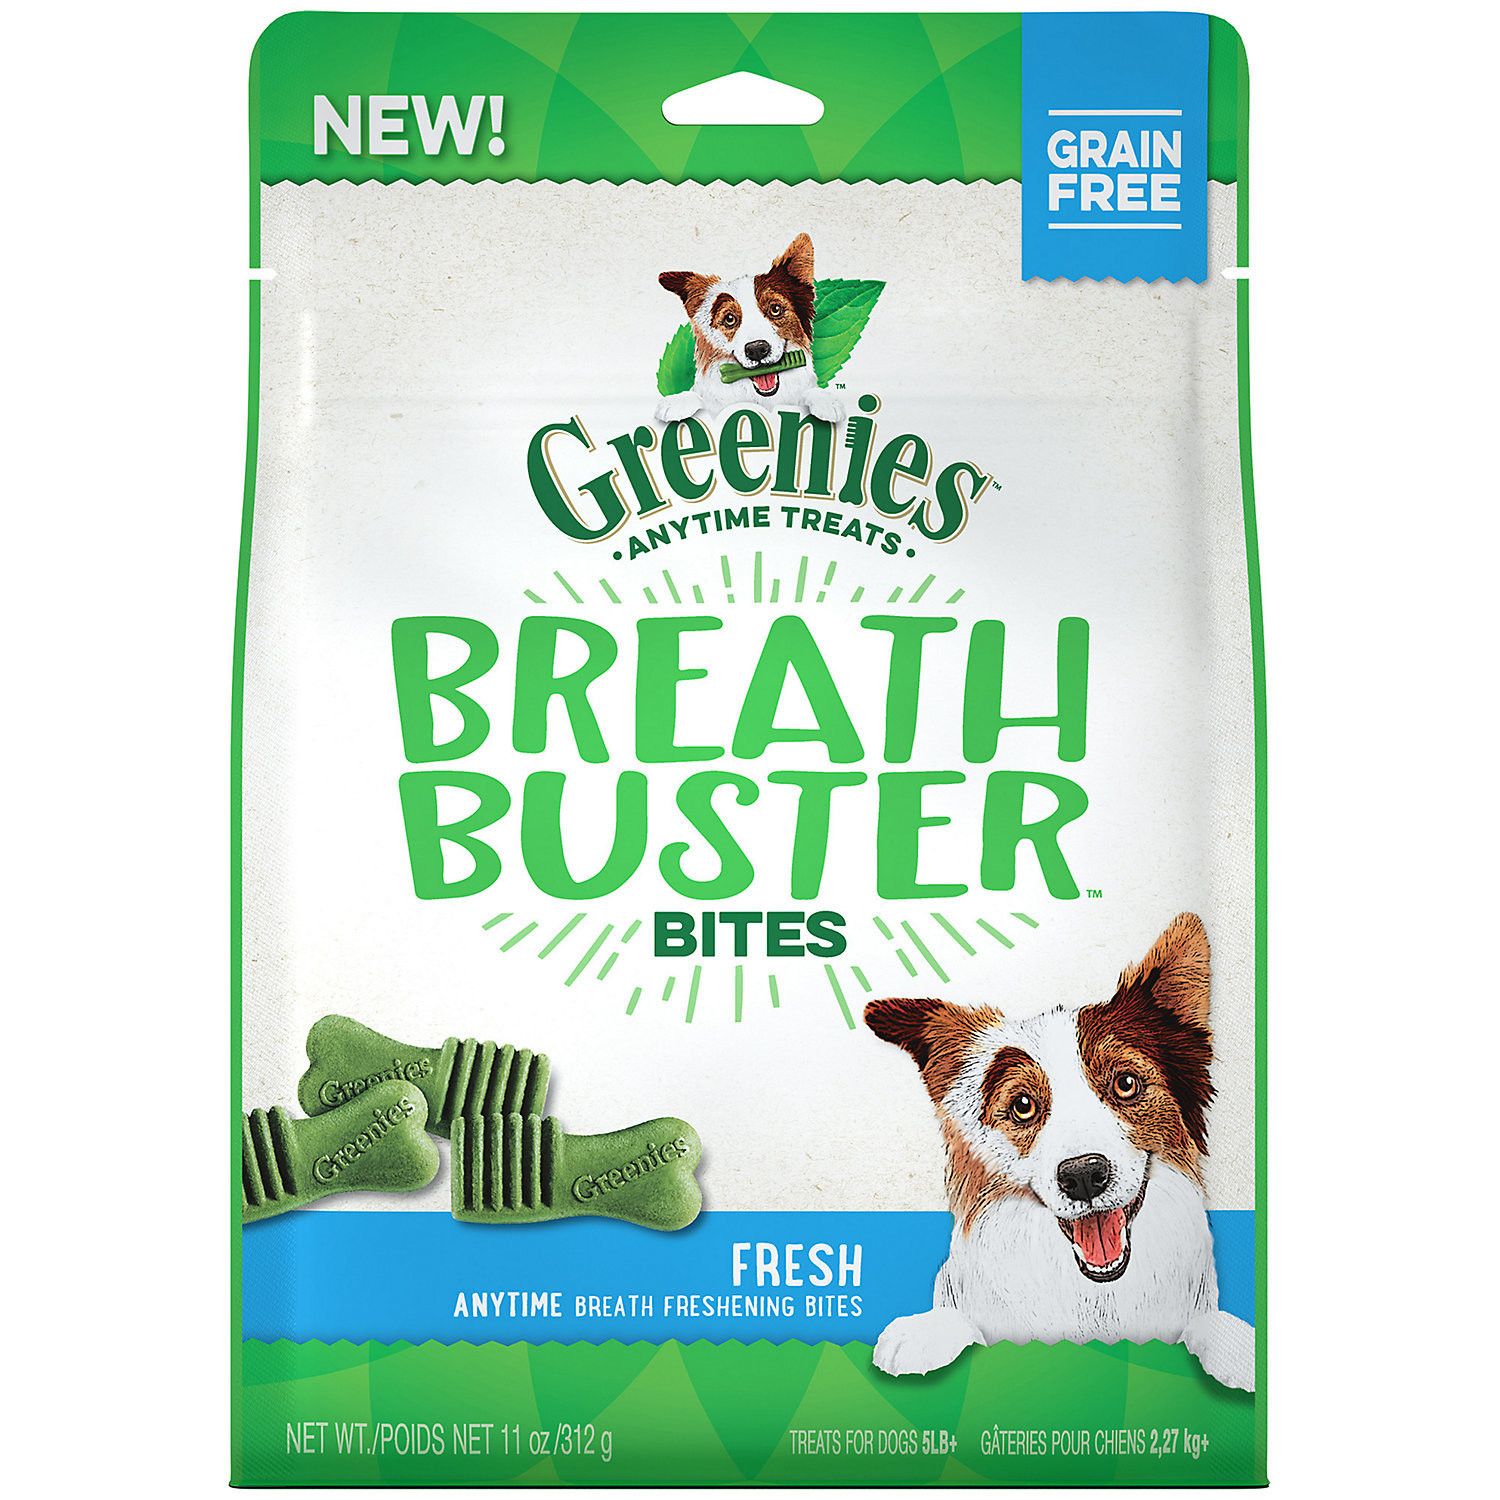 GREENIES BREATH BUSTER Bites Fresh Flavor Treats for Dogs, 11 oz.  (3/19) (T.B3/DT)